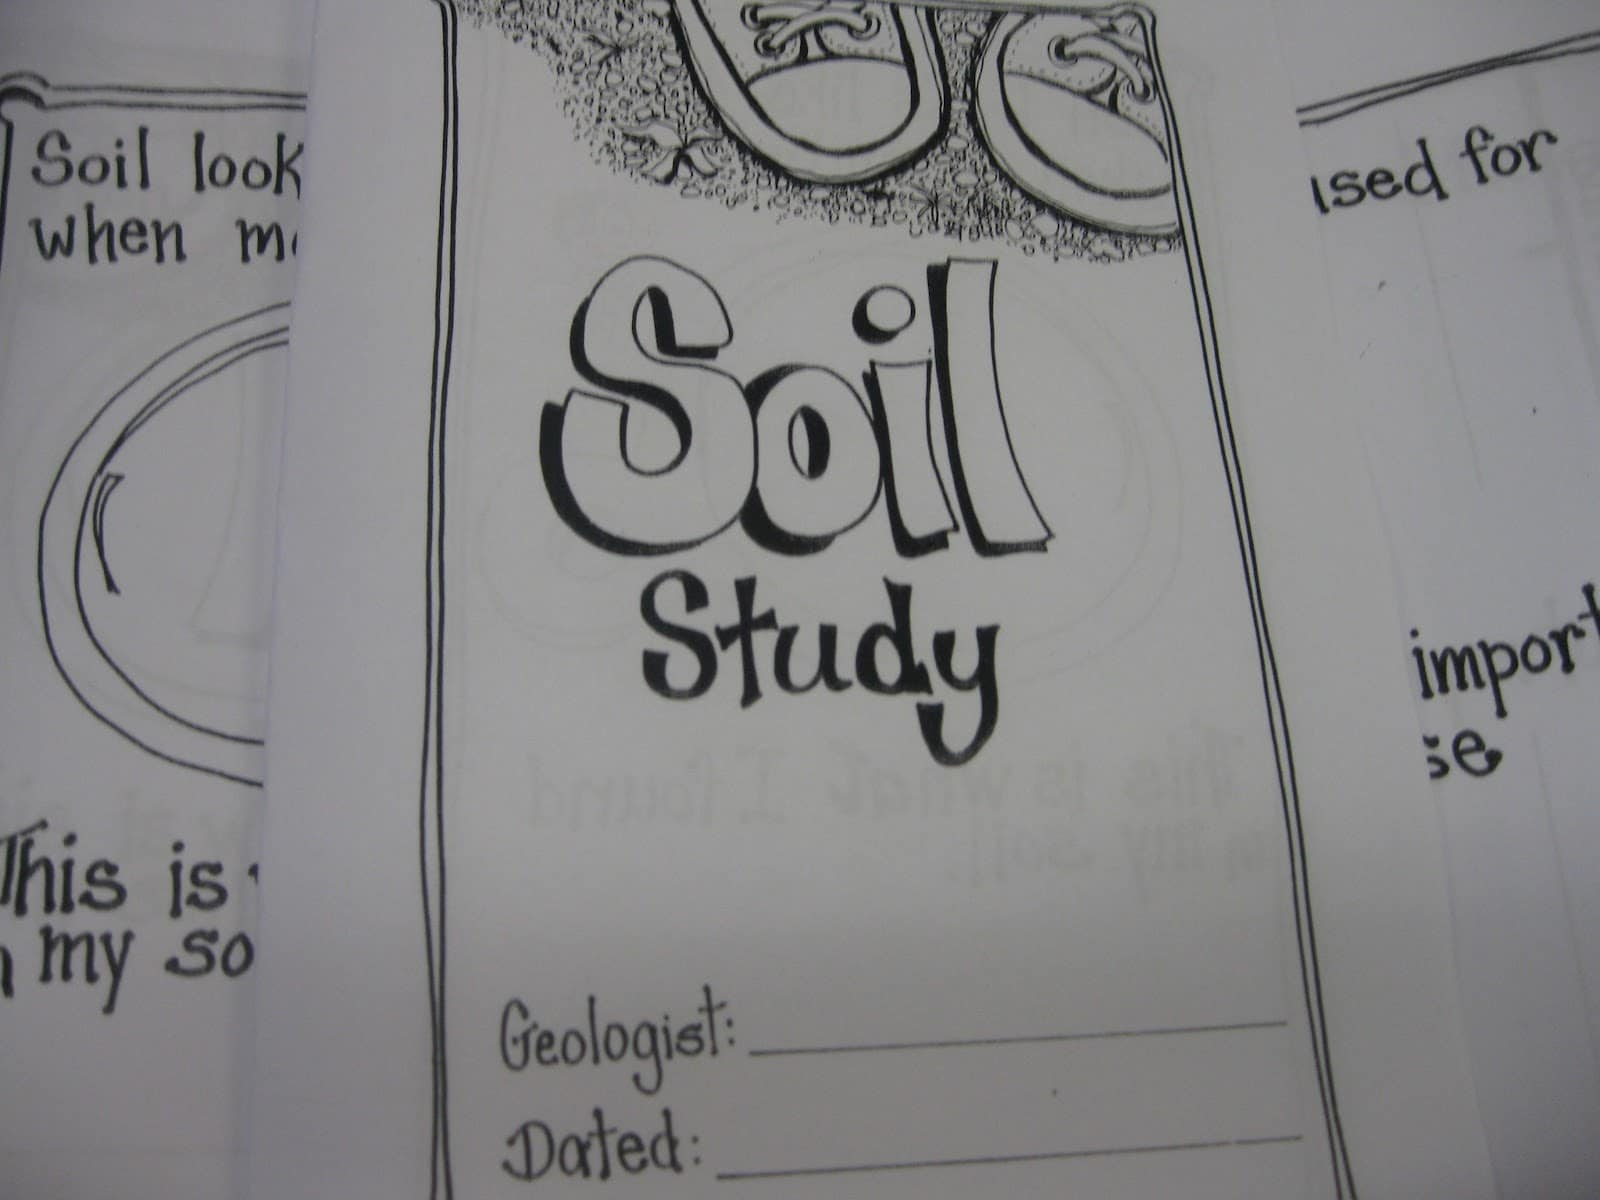 Worksheet About Soil